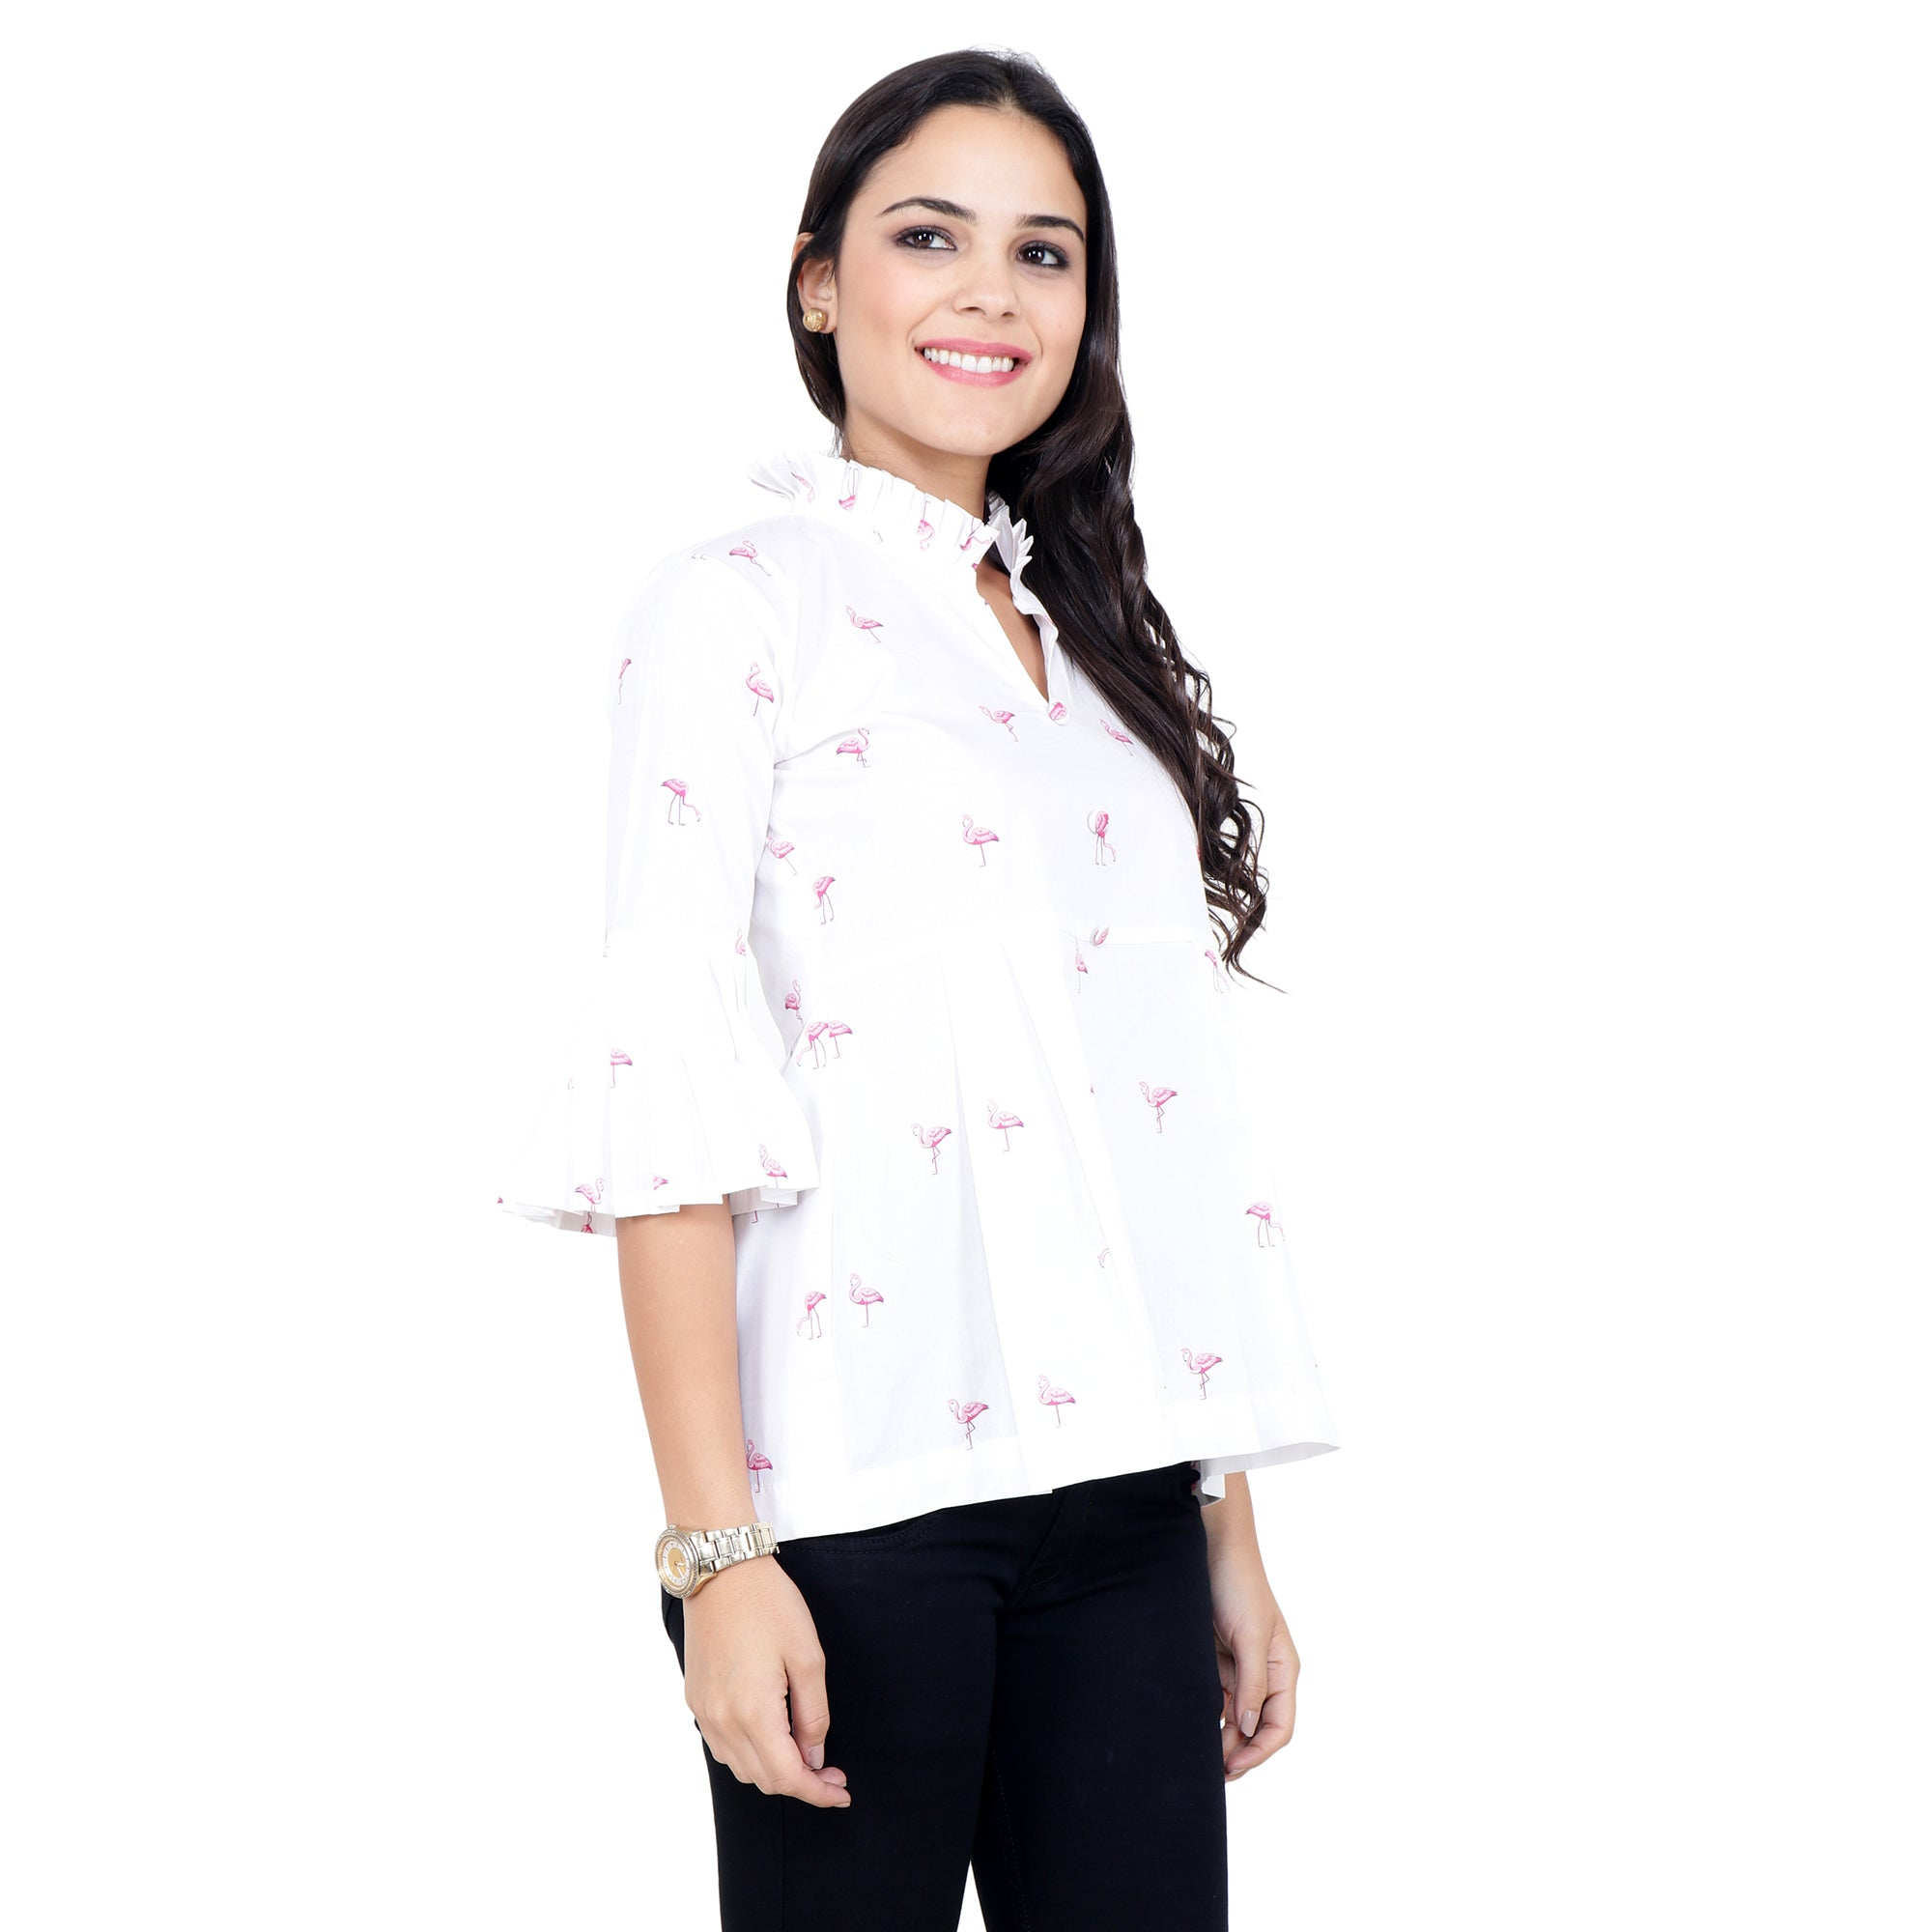 10XL, 2XL, 3XL, 4XL, 5XL, 6XL, 7XL, 8XL, 9XL, COTTON, flamingo print, FRILLED, mandarin neck, PLUS SIZE TOP, TOP, WHITE